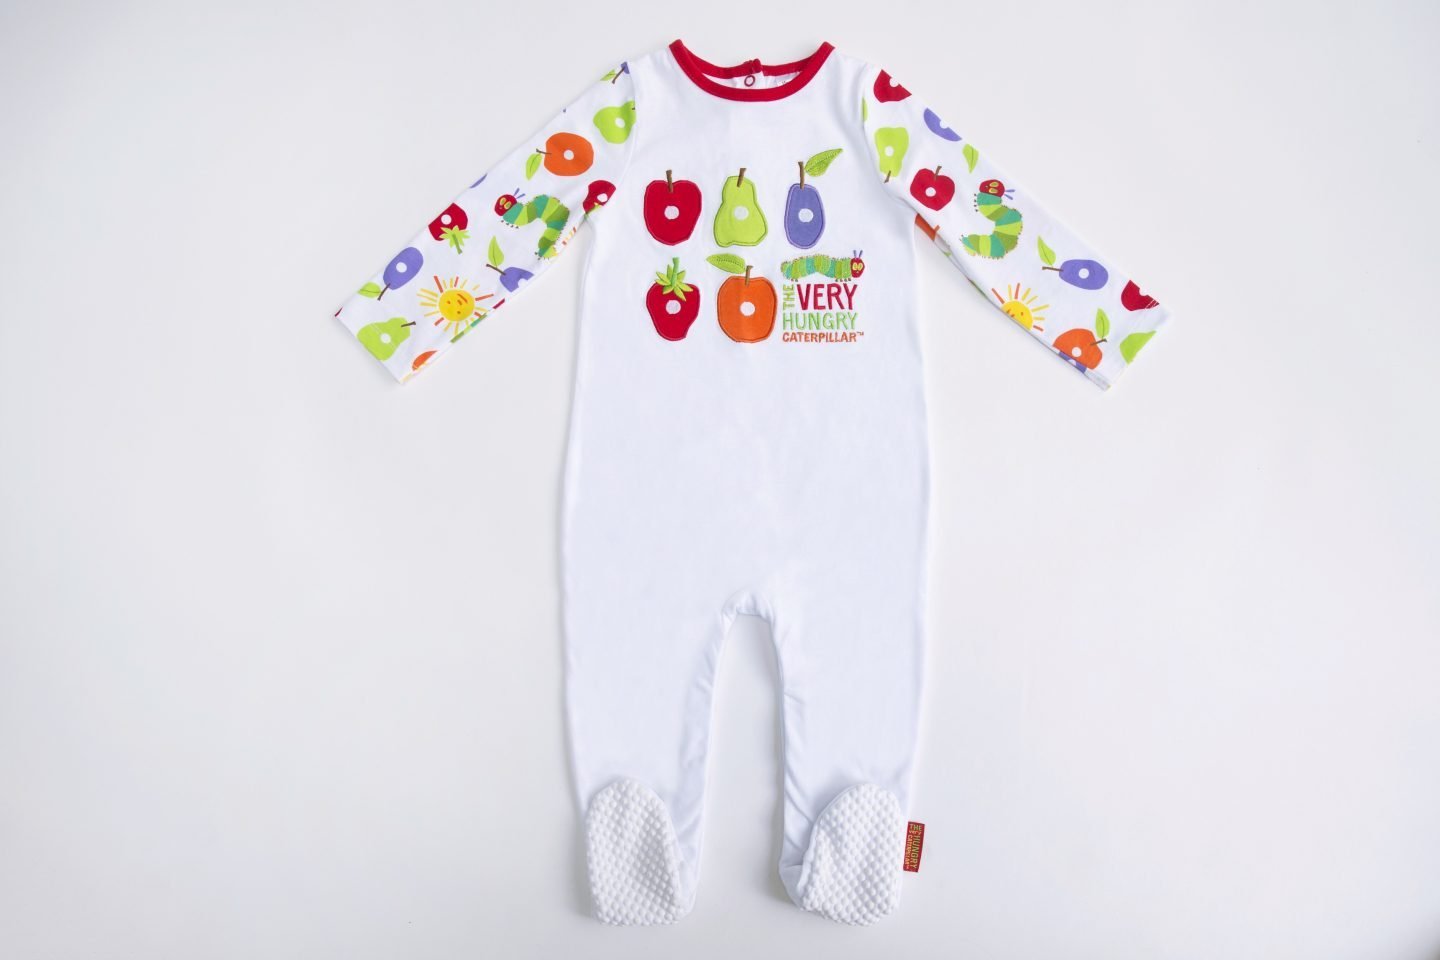 The Hungry Caterpillar Tu Clothing